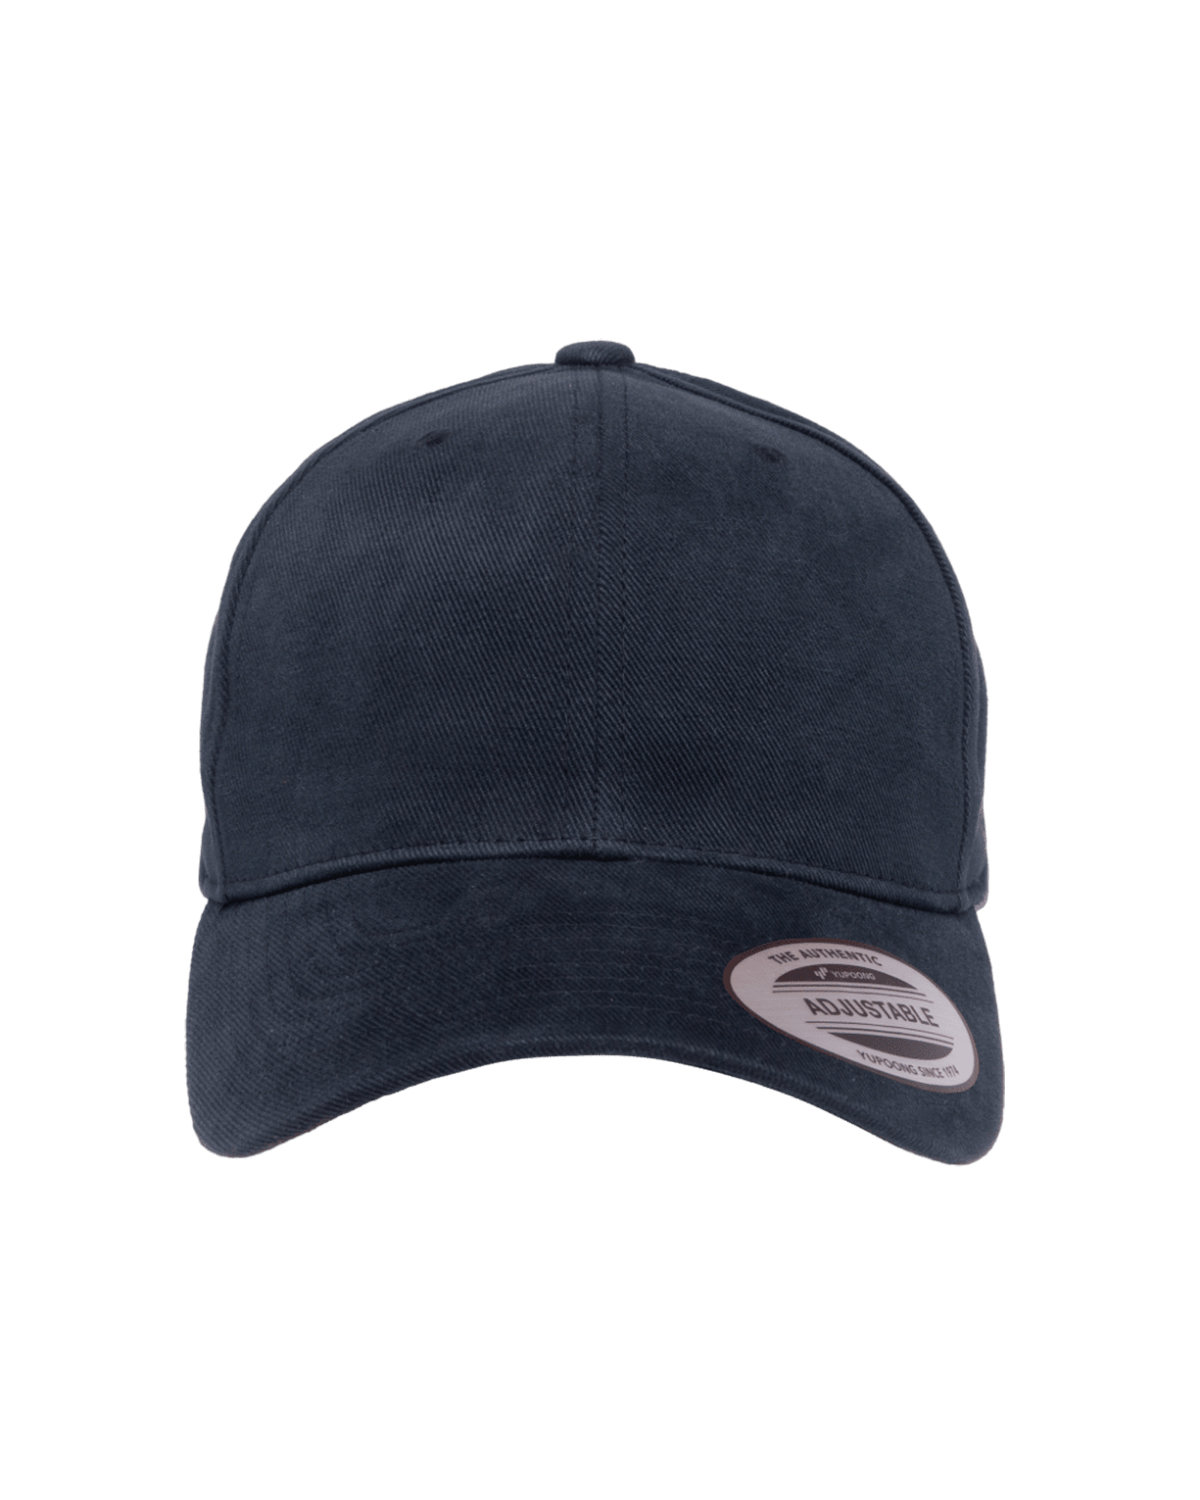 Yupoong Adult Brushed Cotton Twill Mid-Profile Cap NAVY